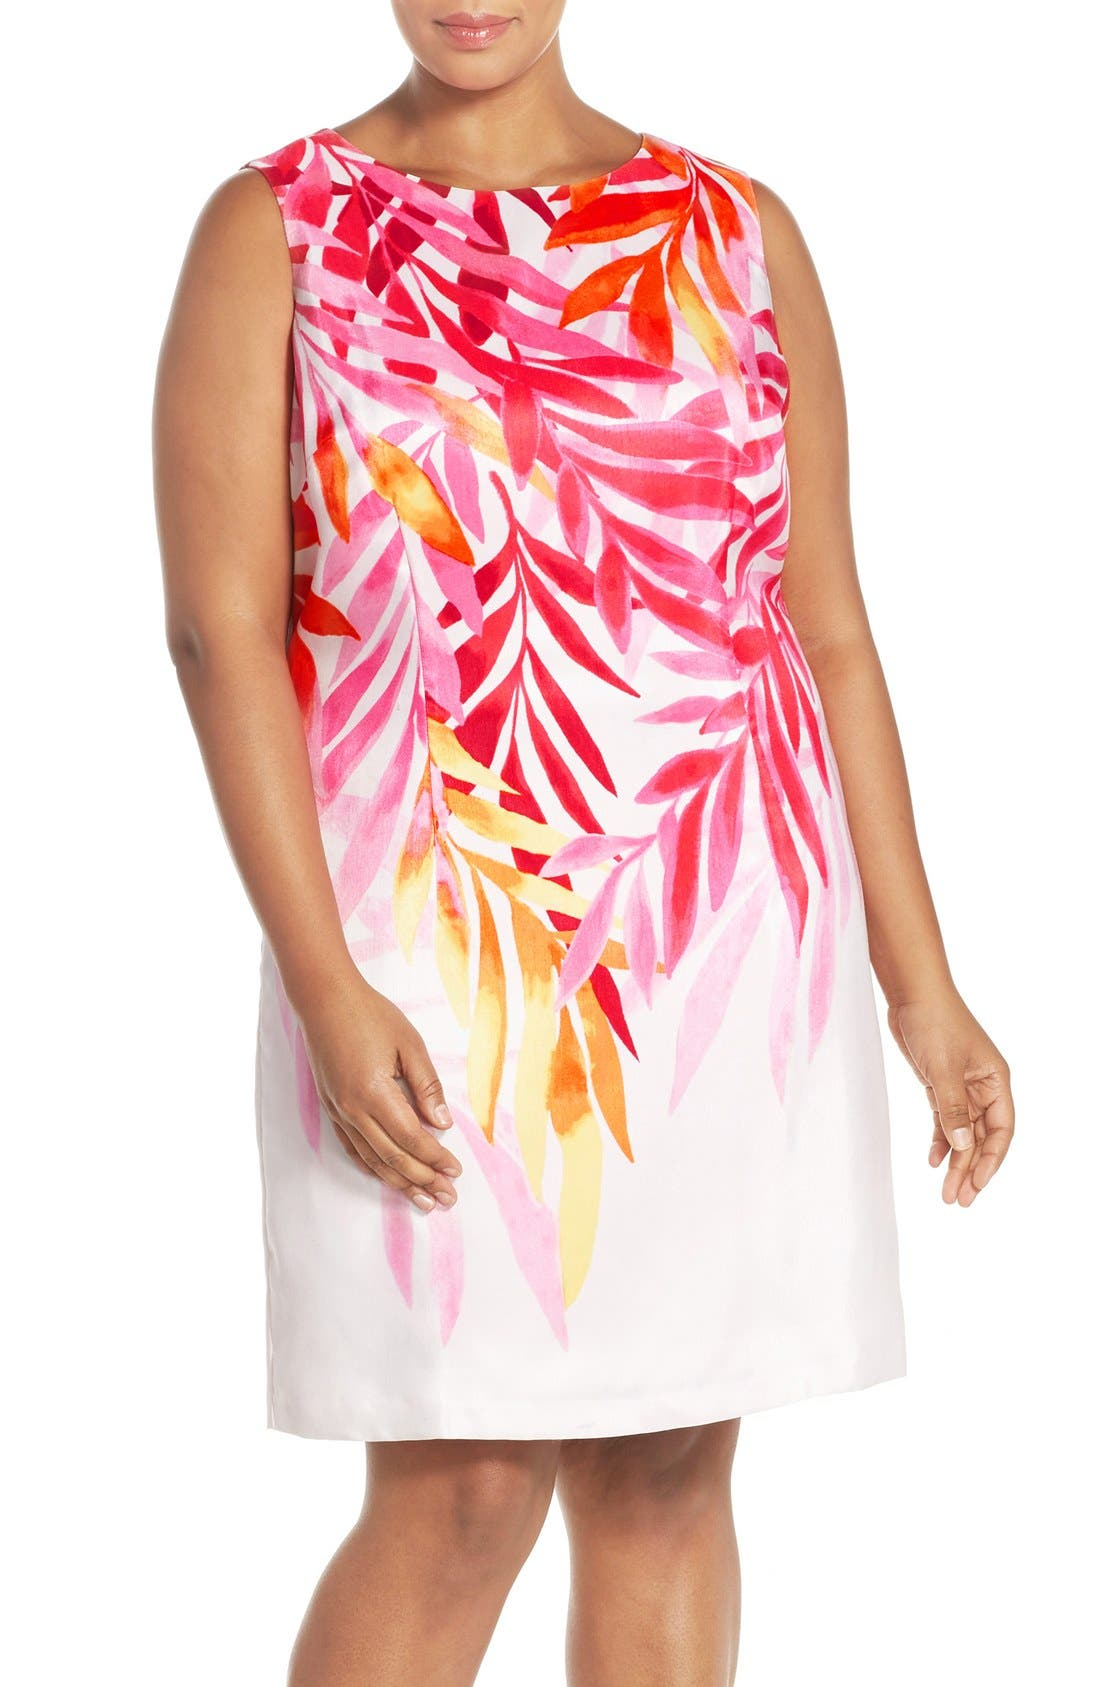 ELLEN TRACY Placed Print Sleeveless Sheath Dress